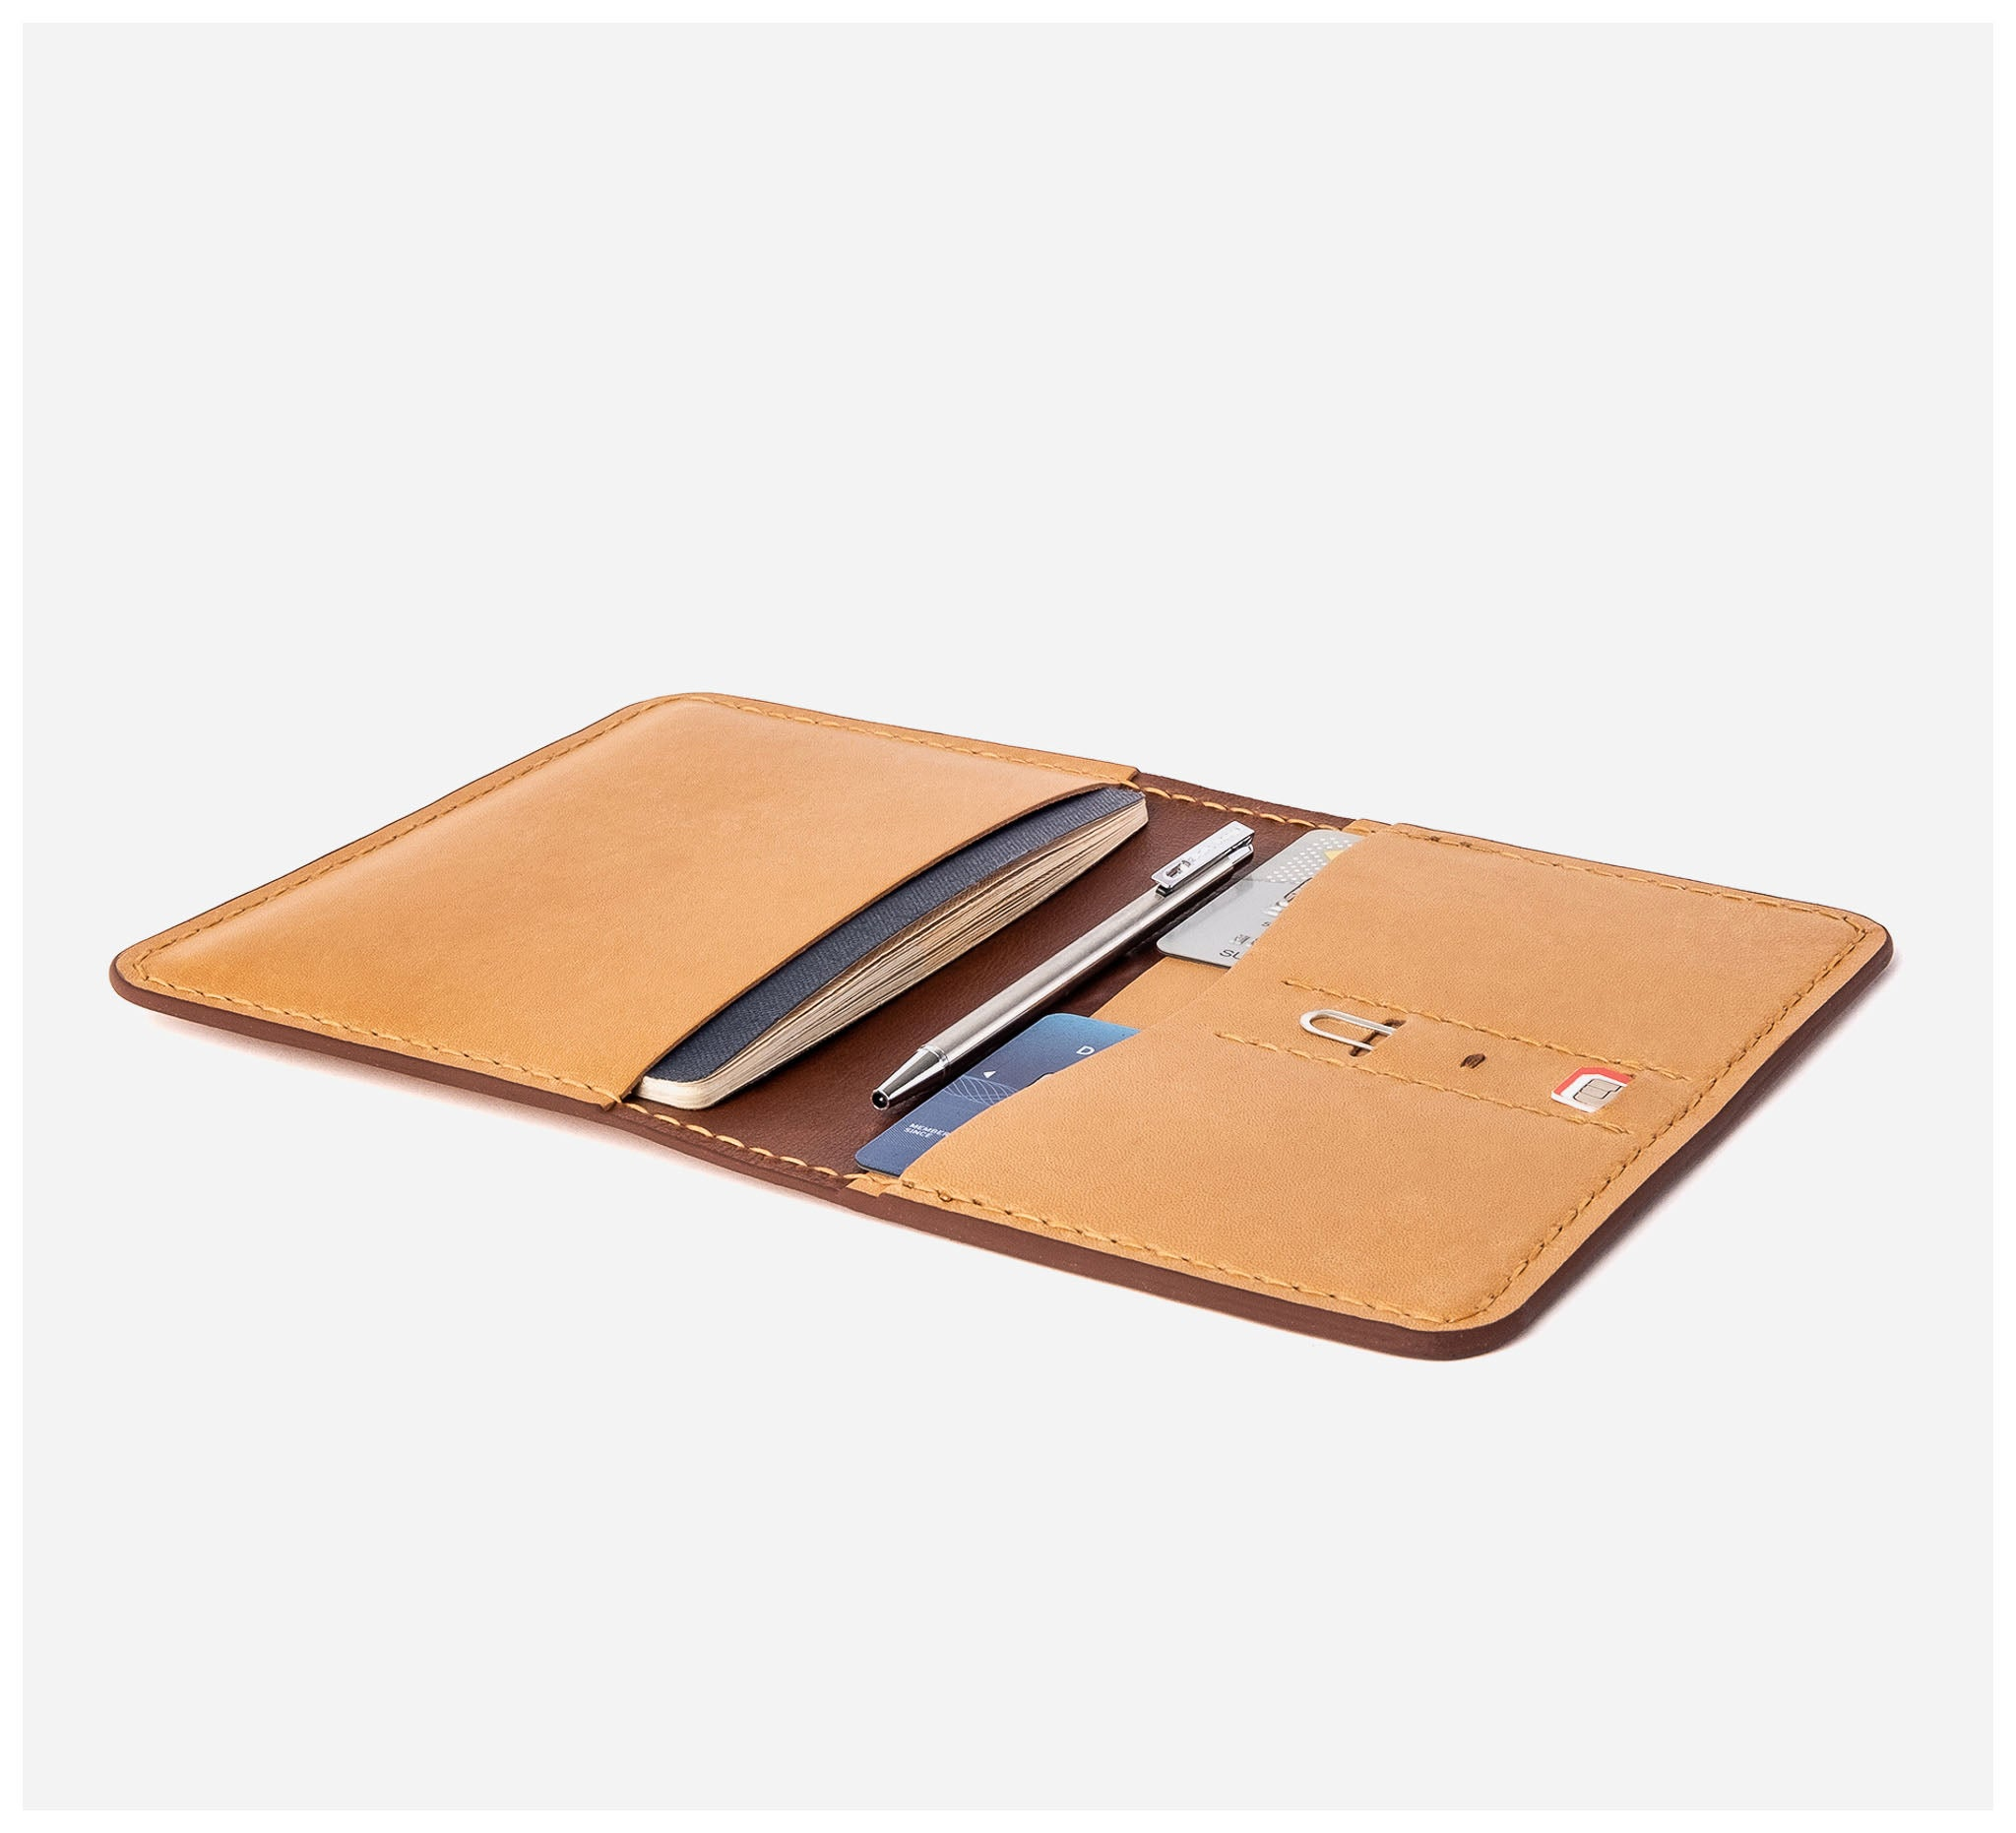 Blackinkk - Travel Wallet RFID - Kangaroo Leather - Camel